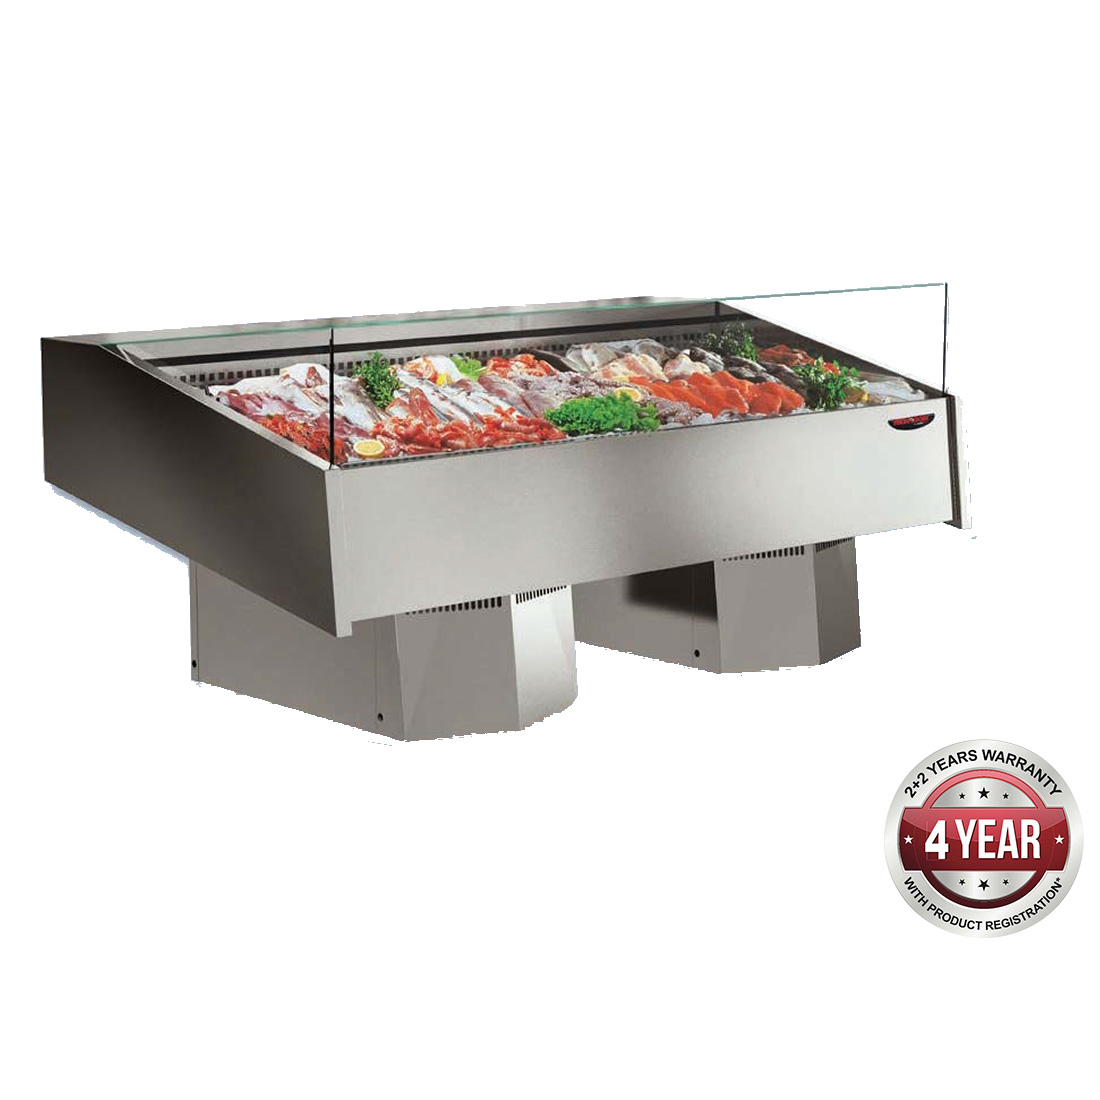 Multiplexable Serve-over Refrigerated Fish Open Display - FSG2000